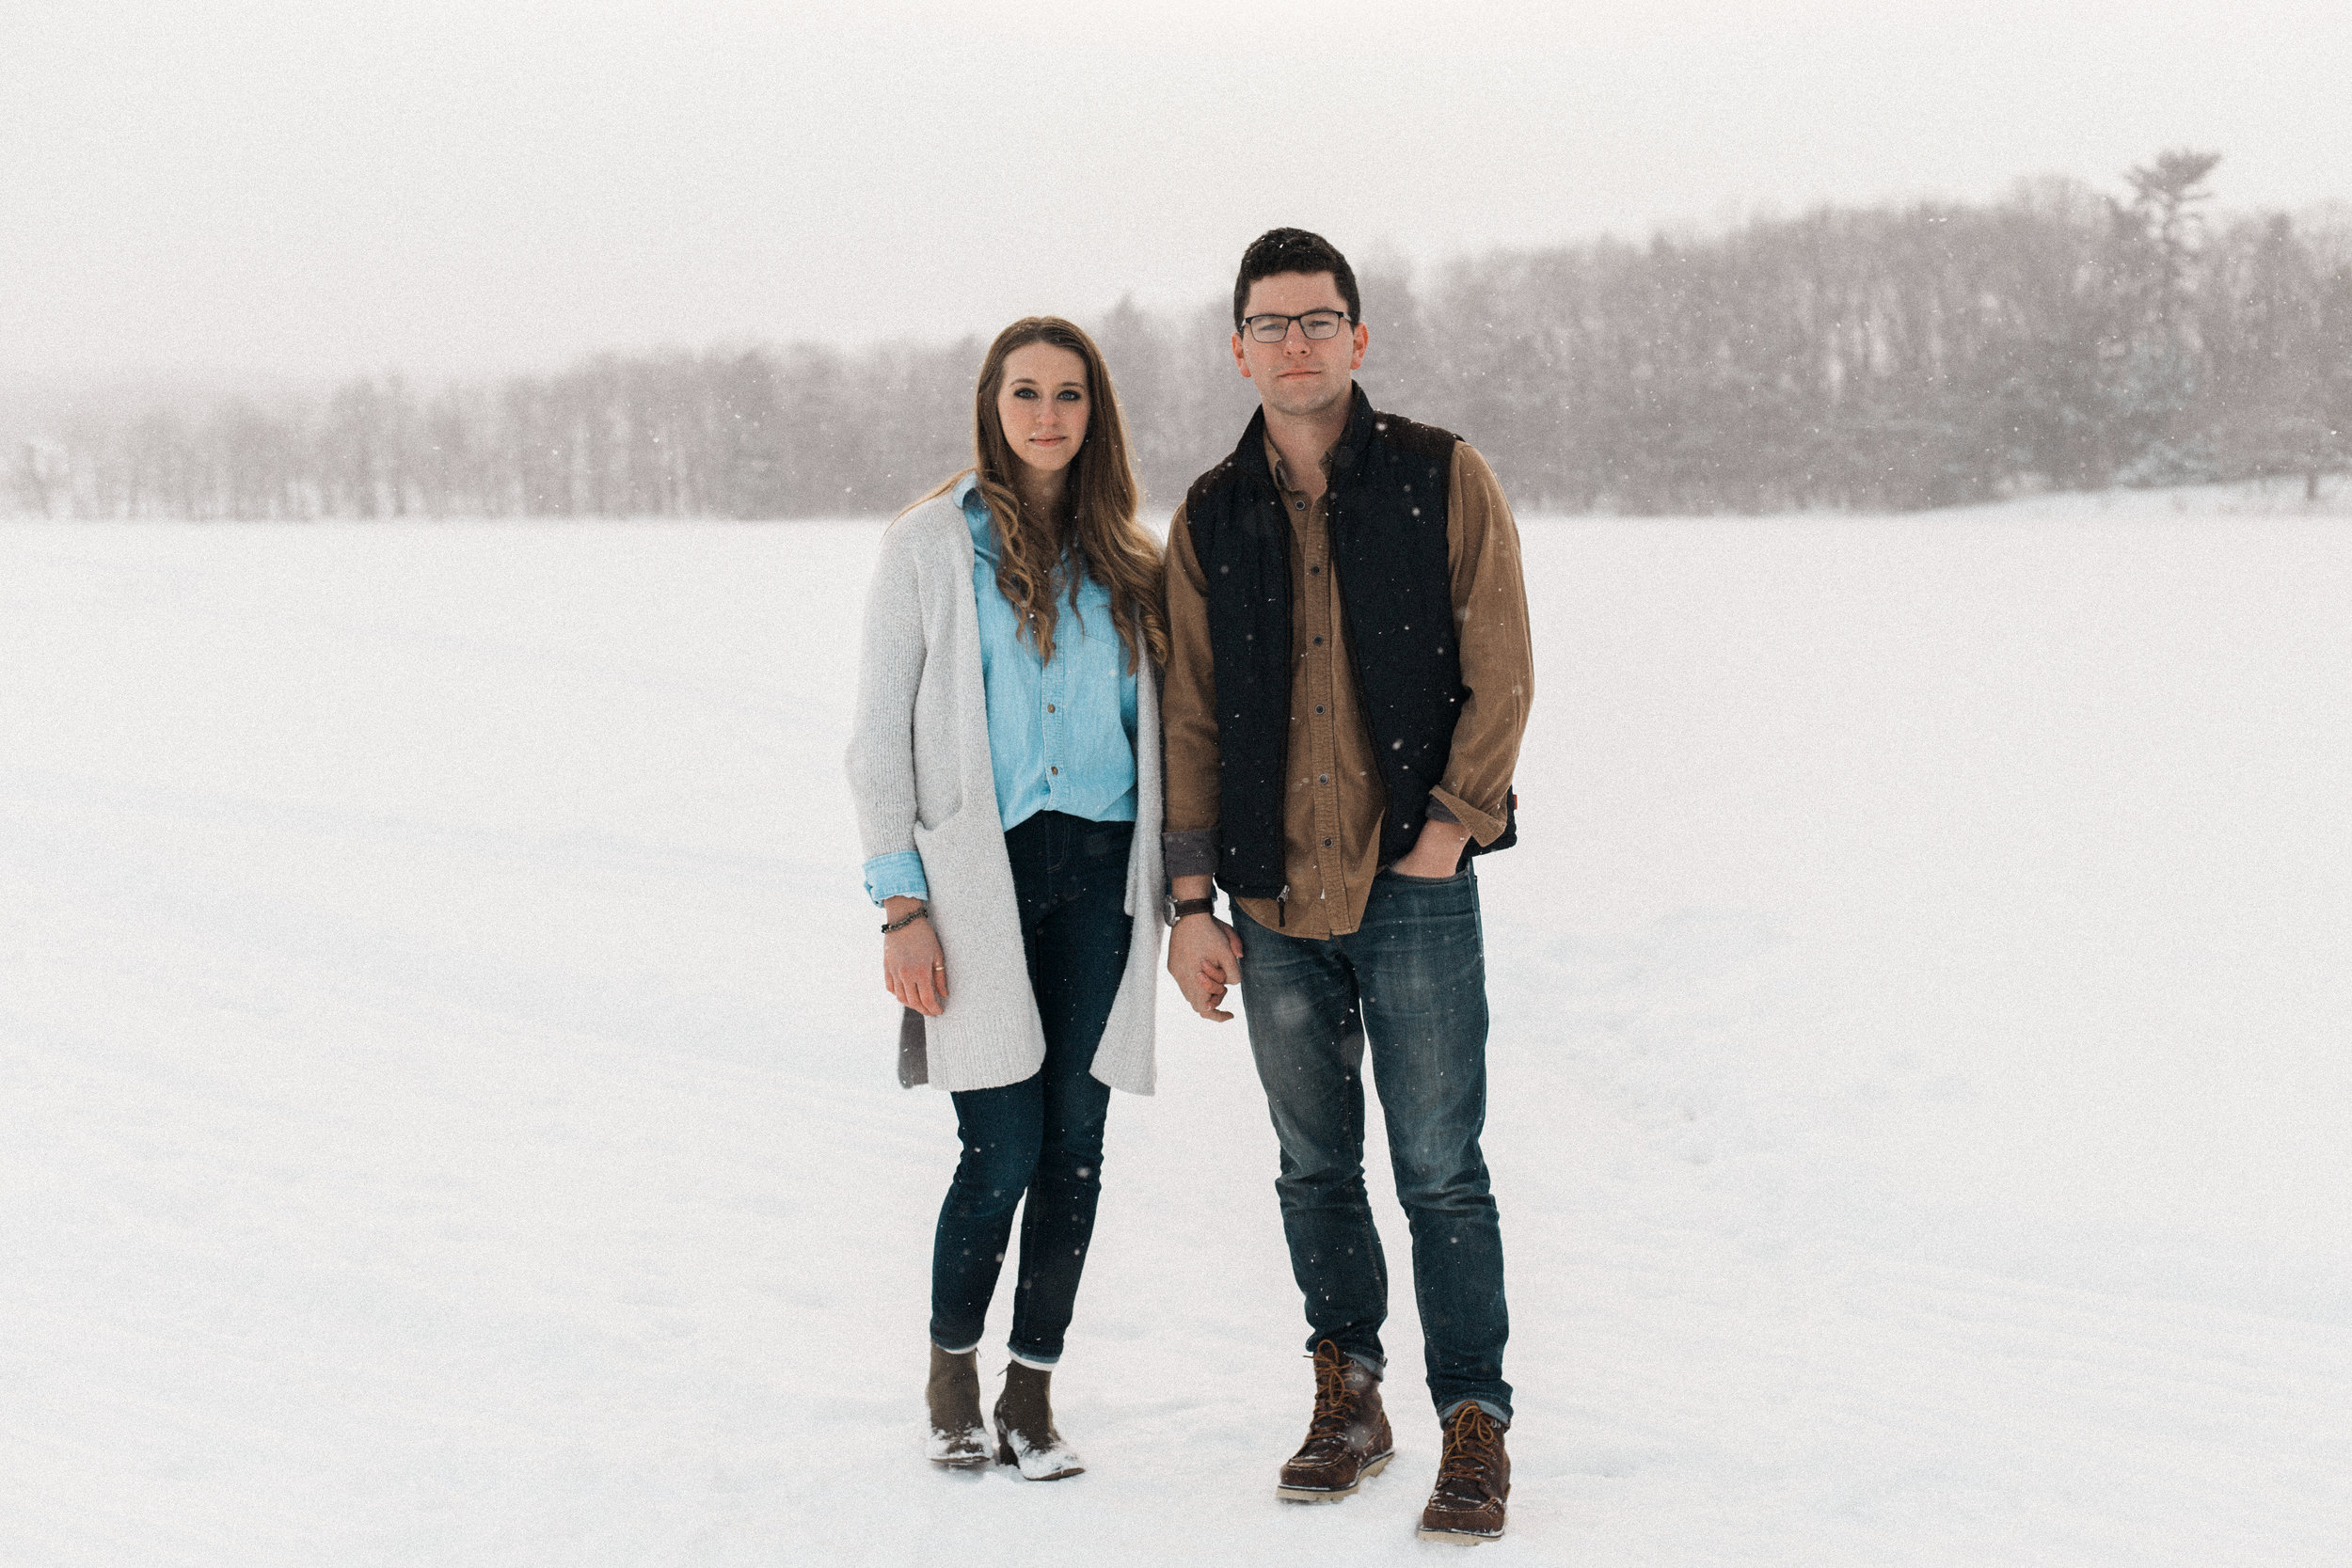 katie_graham_photography_engagement_session_winter_long_point_state_park_bemus_point_new_york_wedding_photographer_photography